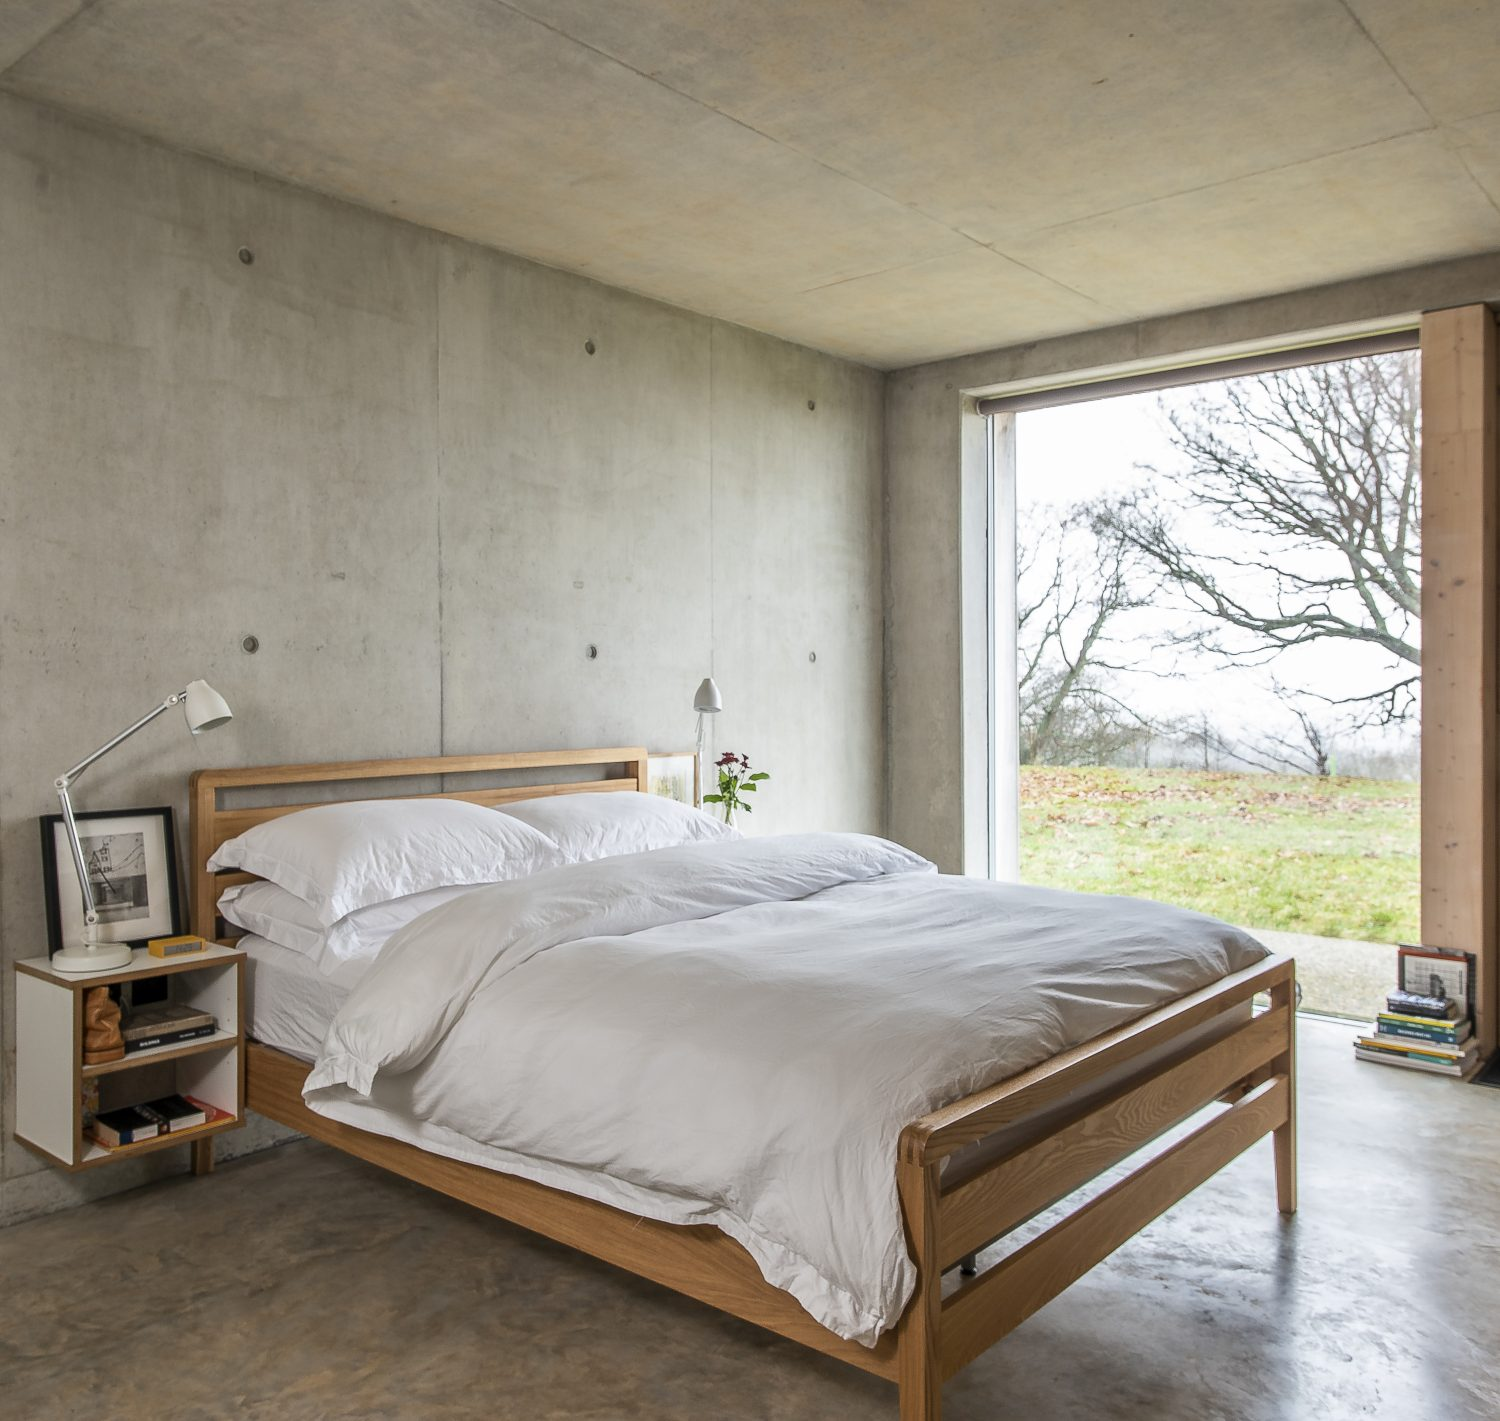 The three downstairs bedrooms all make the most of the wonderful rural vistas. There's no shortage of carefully considered accessible storage throughout